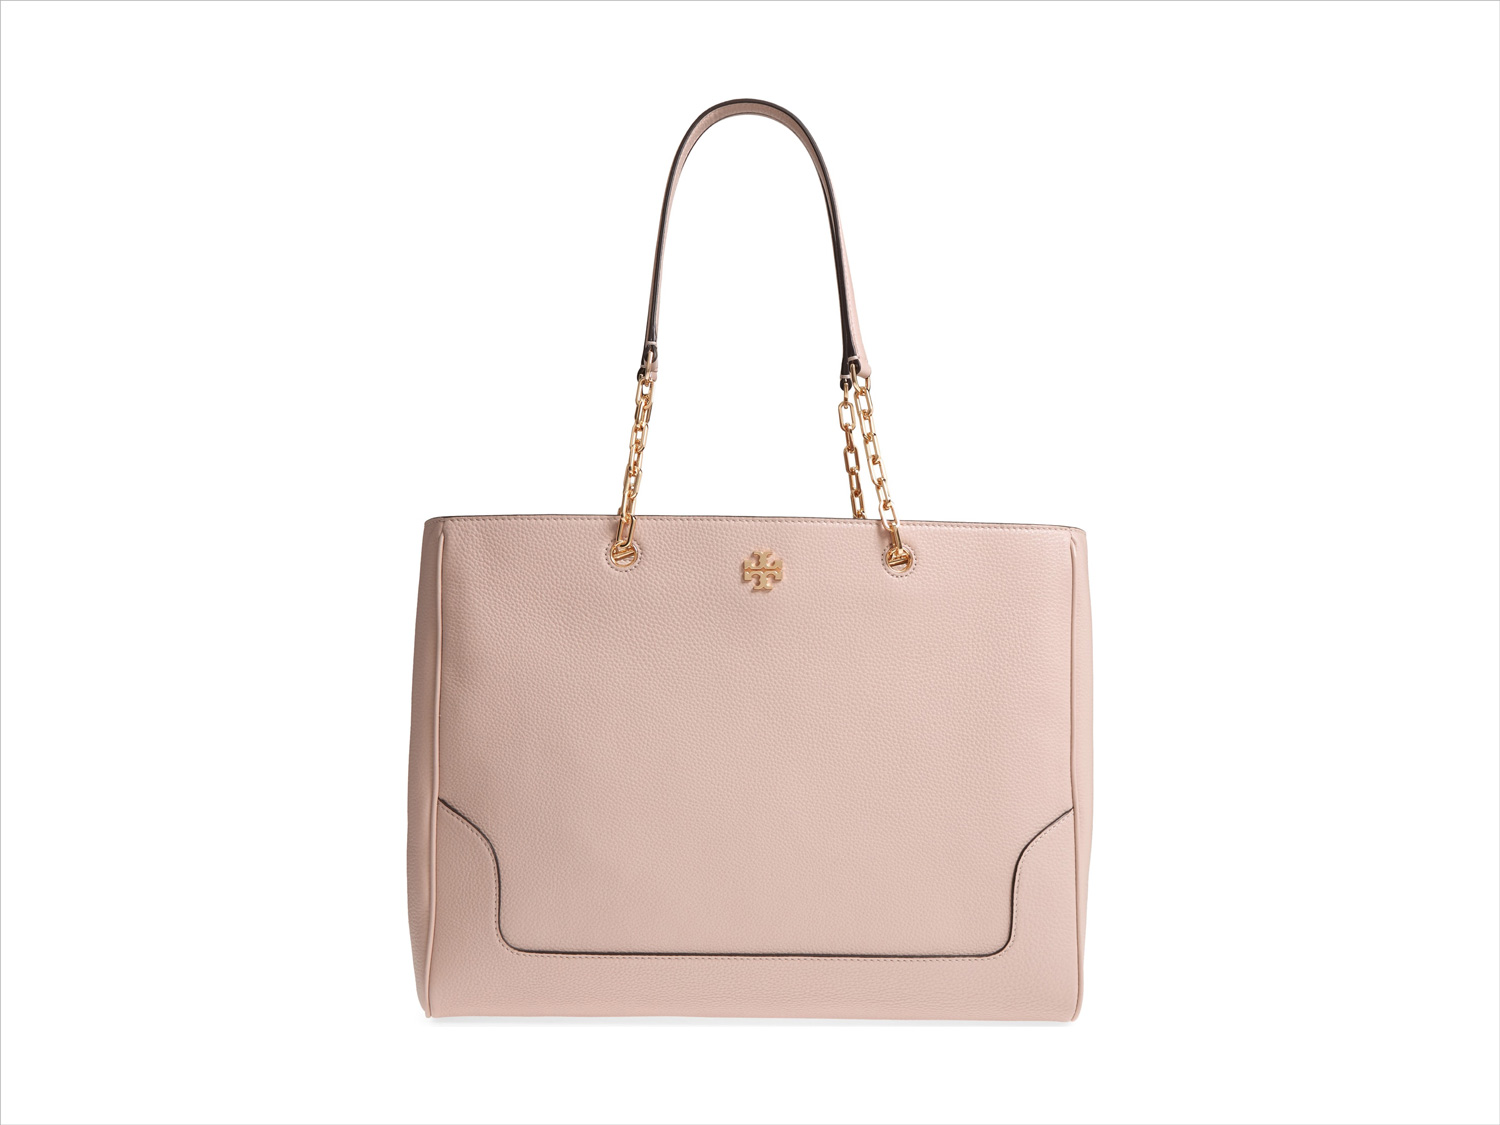 Nordstrom anniversary sale marsden tote bag by tory burch blush purse